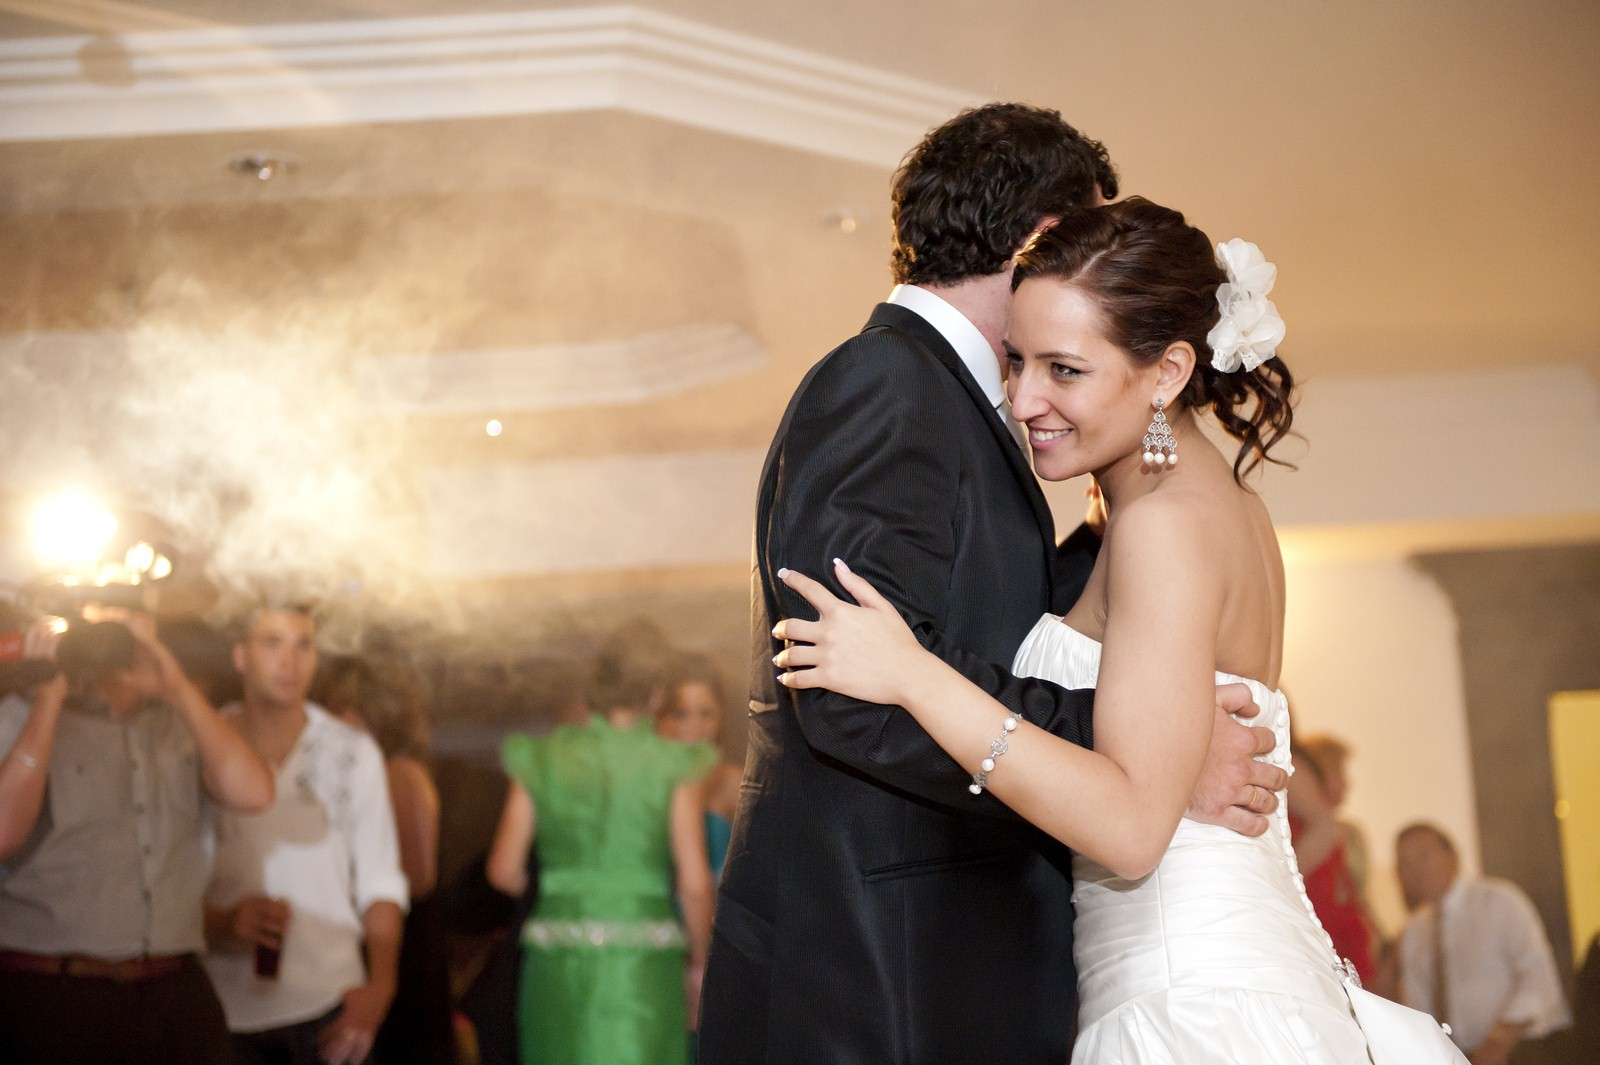 Footloose Wedding Dance Tips Ensure You Can Salsa Or Tango With Style